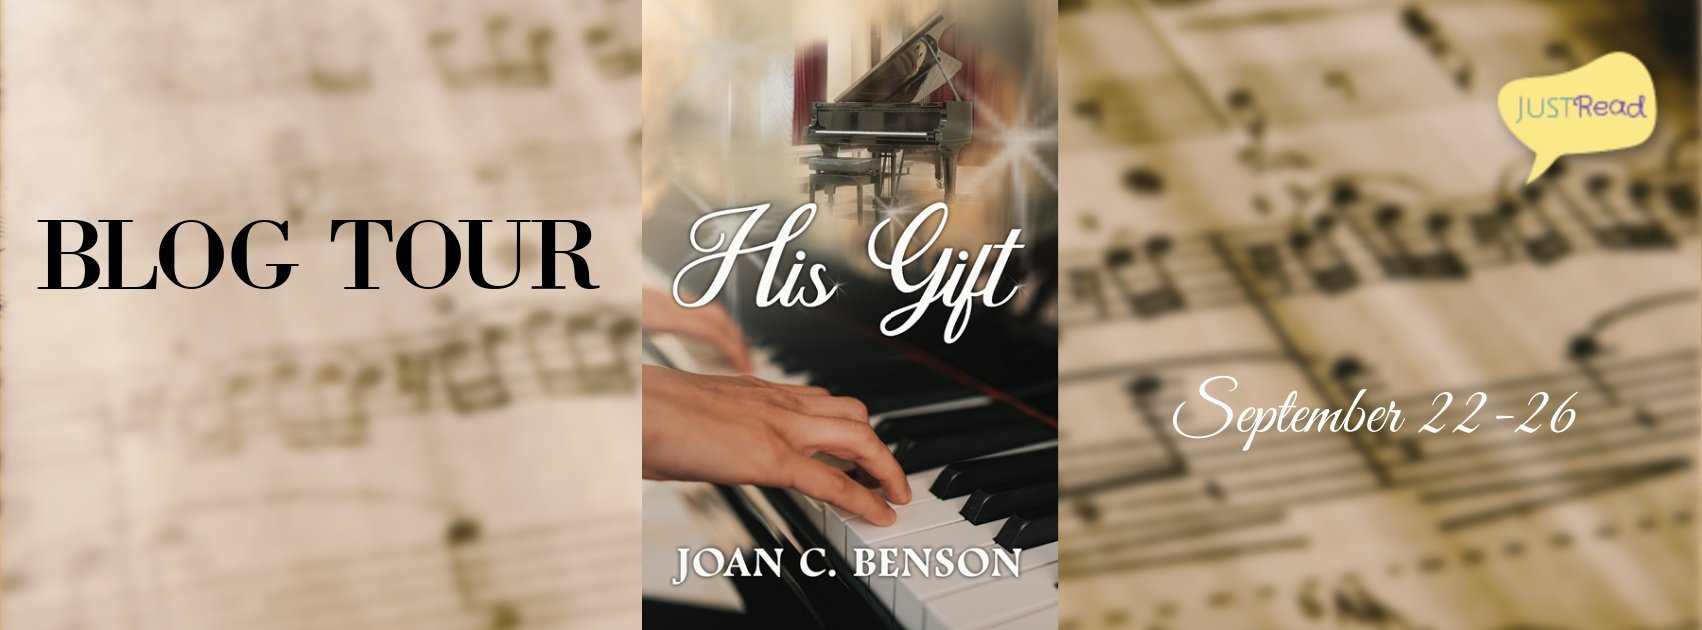 His Gift JustRead Blog Tour